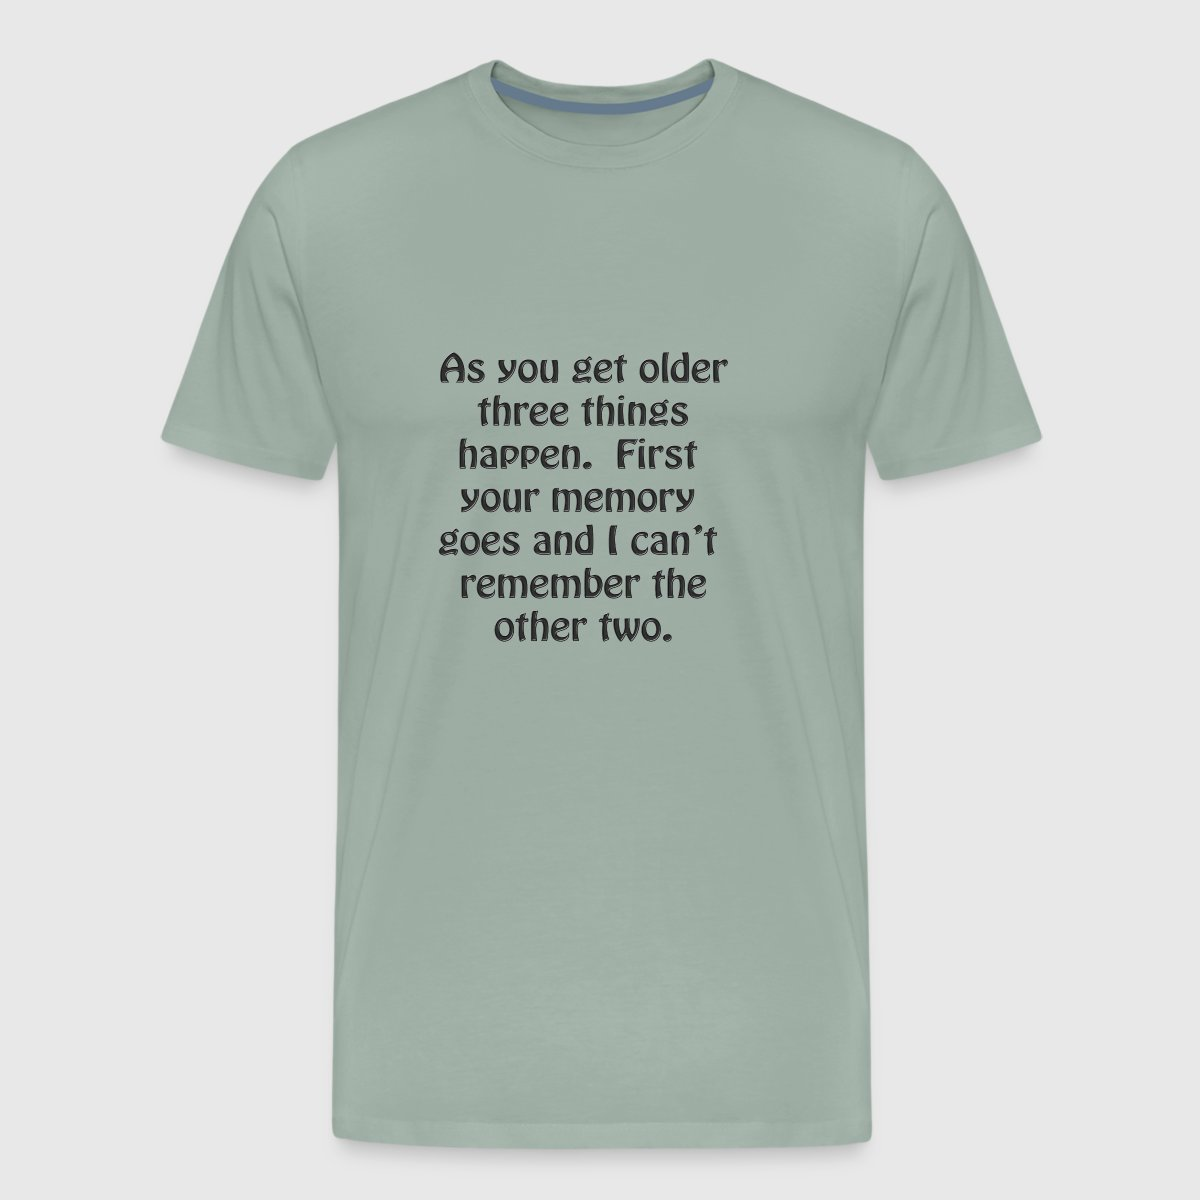 0a48e8927a5 Funny Sayings For Baby T Shirts